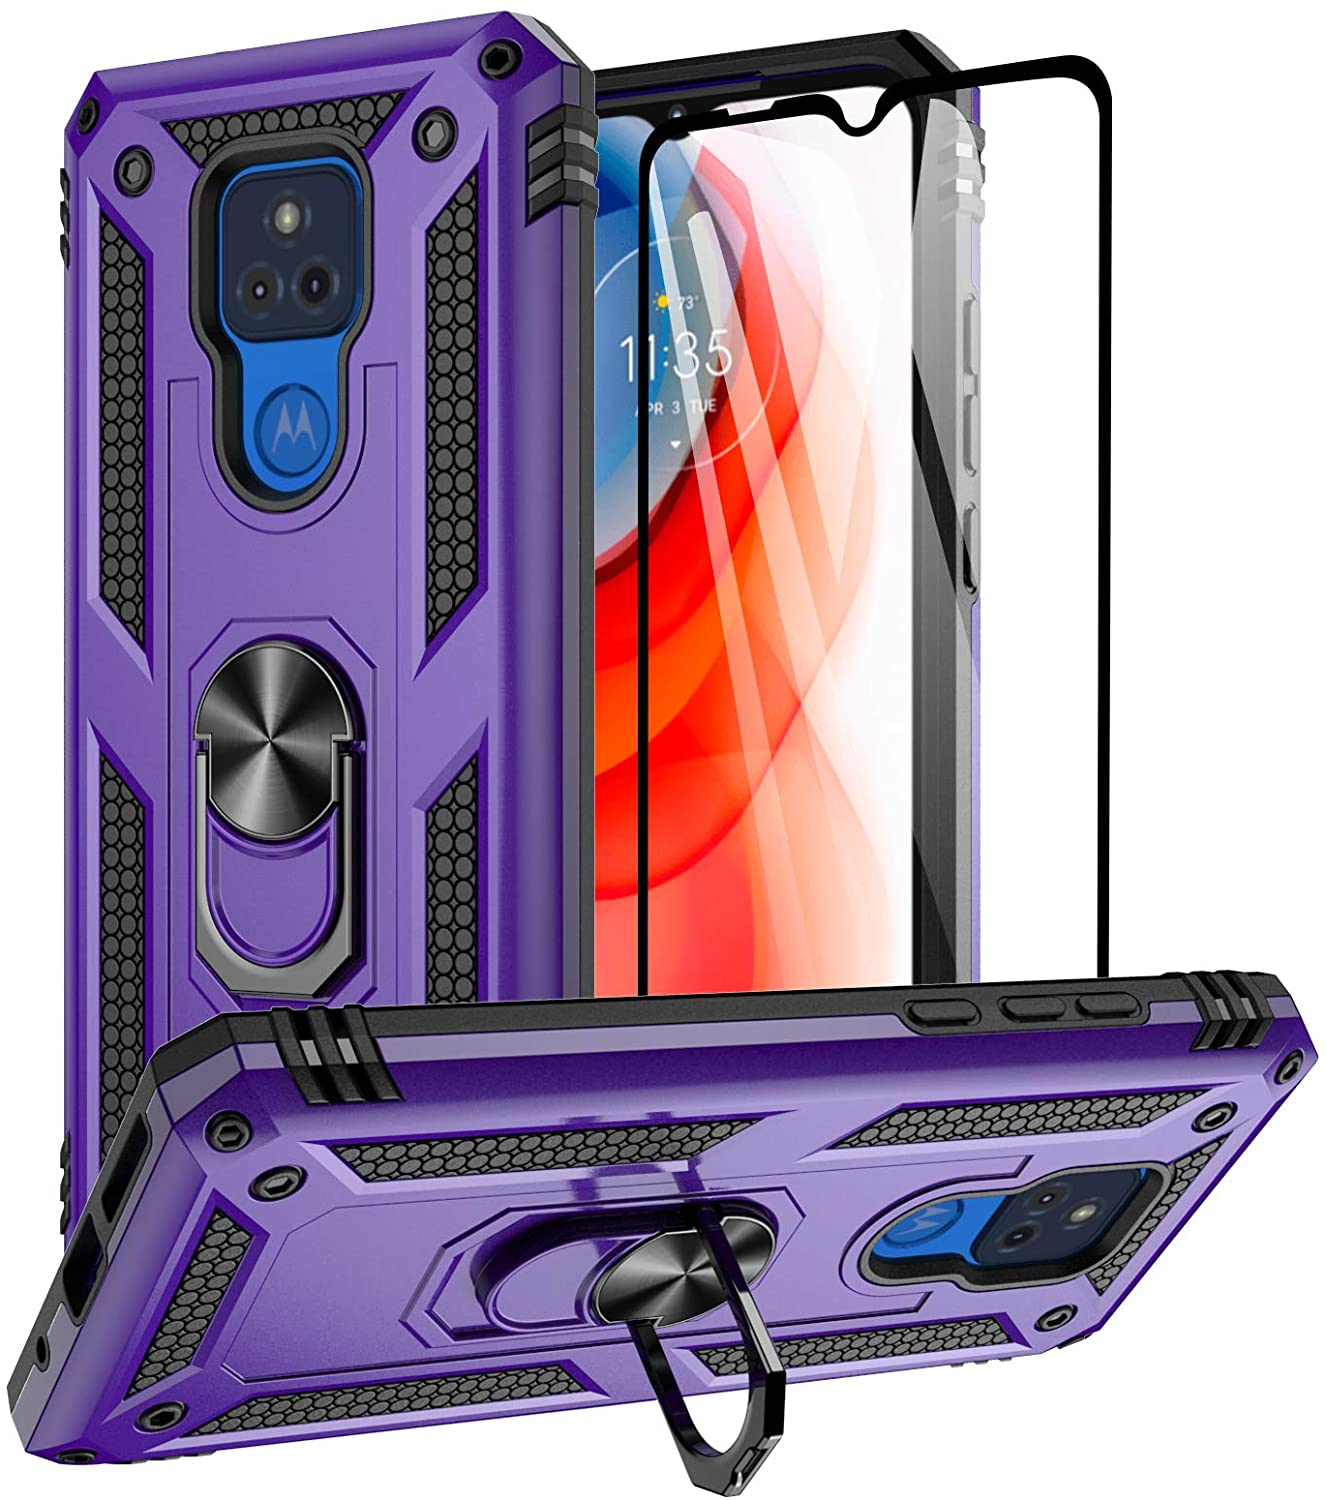 Aliruke Moto G Play 2021 Case with Tempered Glass Screen Protector and Grip Ring Kickstand, Military Grade Protective Cover Magnetic Finger Loop Stand Phone Cases for Motorola Moto G Play 2021, Purple